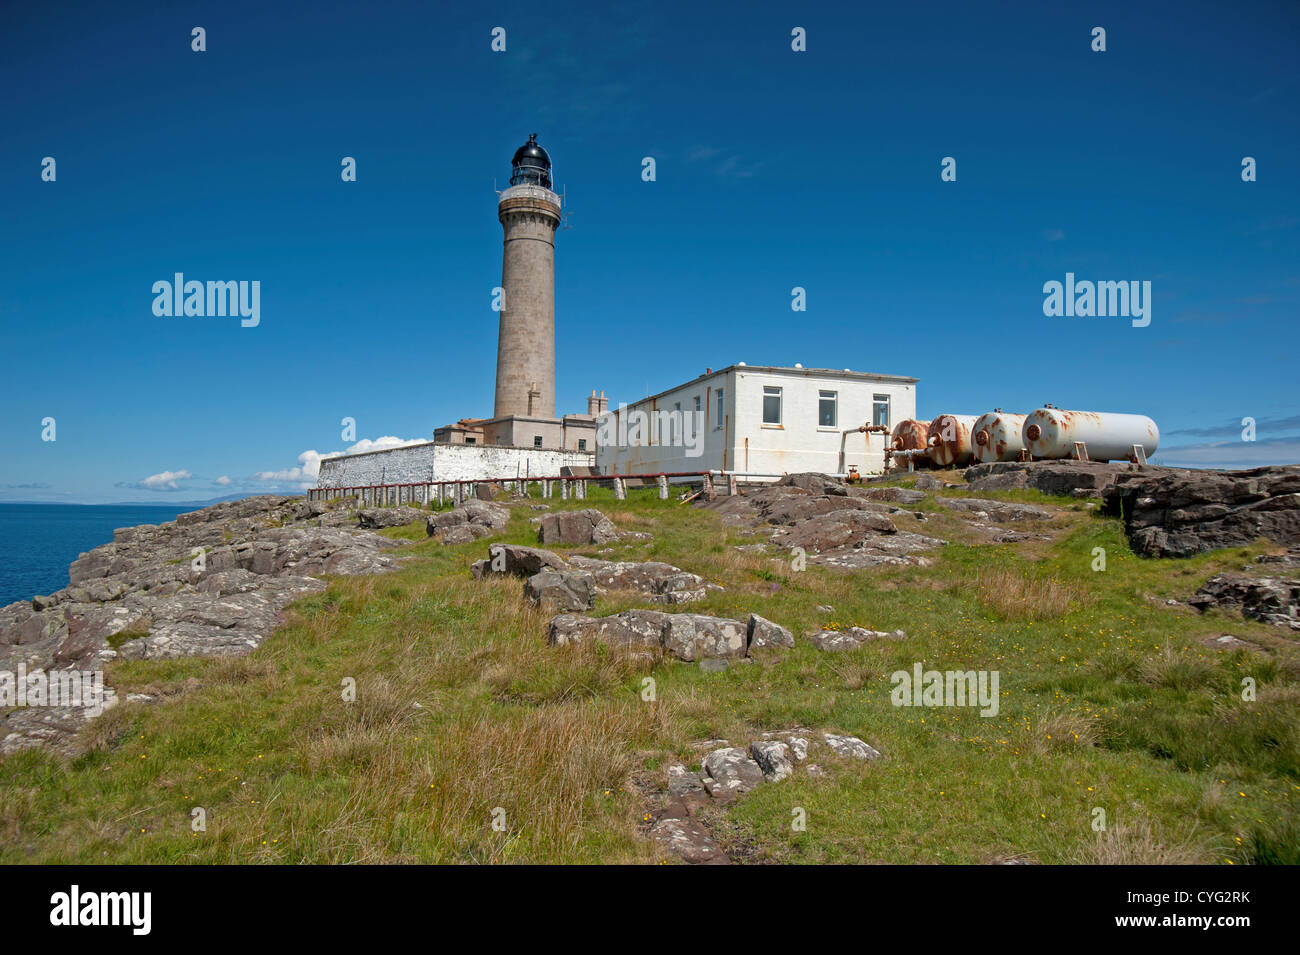 Ardnamurchan Lighthouse is situated on the most westerly point of the British Mainland.   SCO 8755 - Stock Image